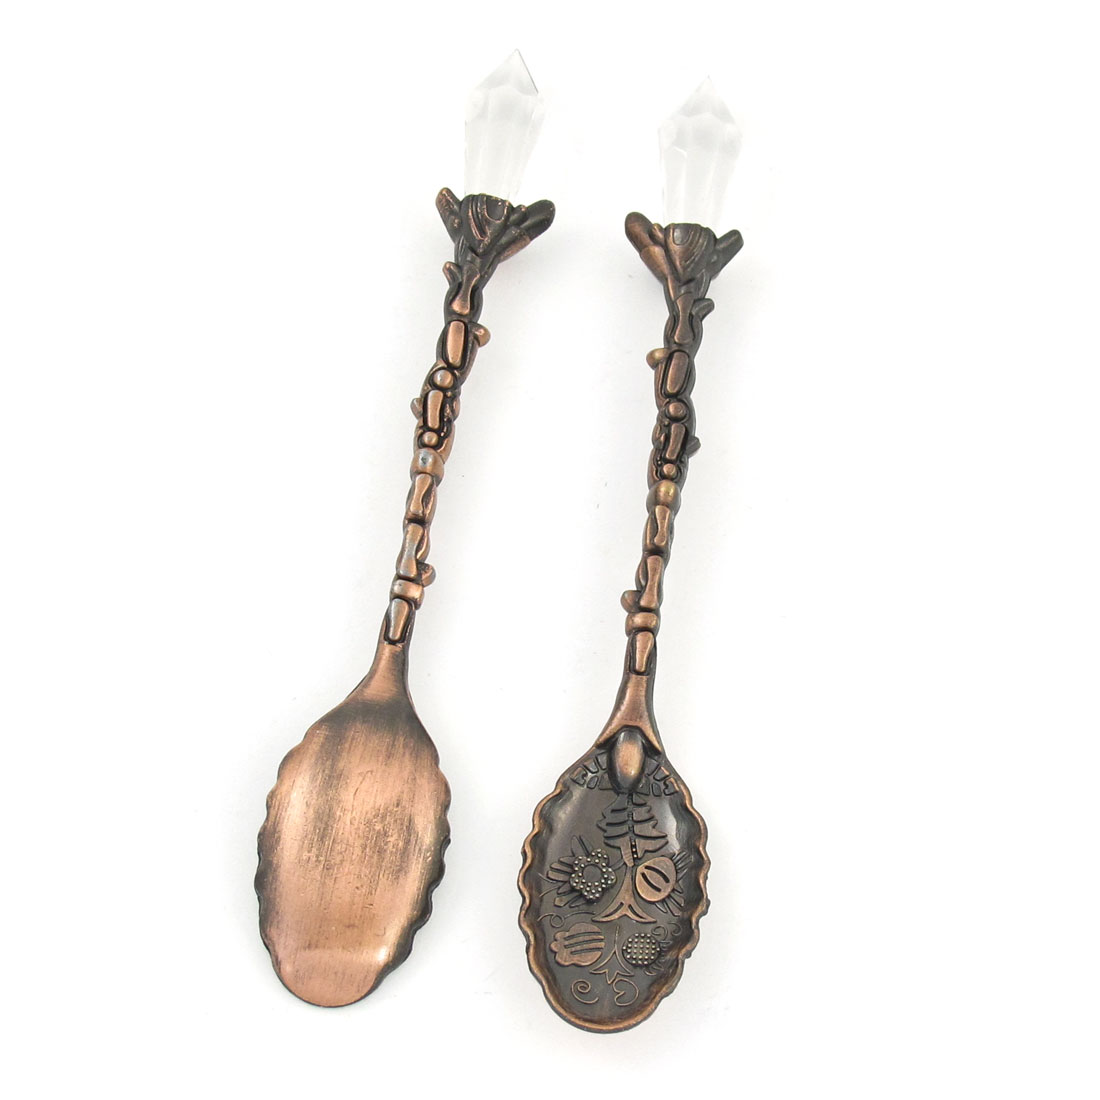 2 Pcs Bronze Tone Carved Flower Detail Small Coffee Spoon